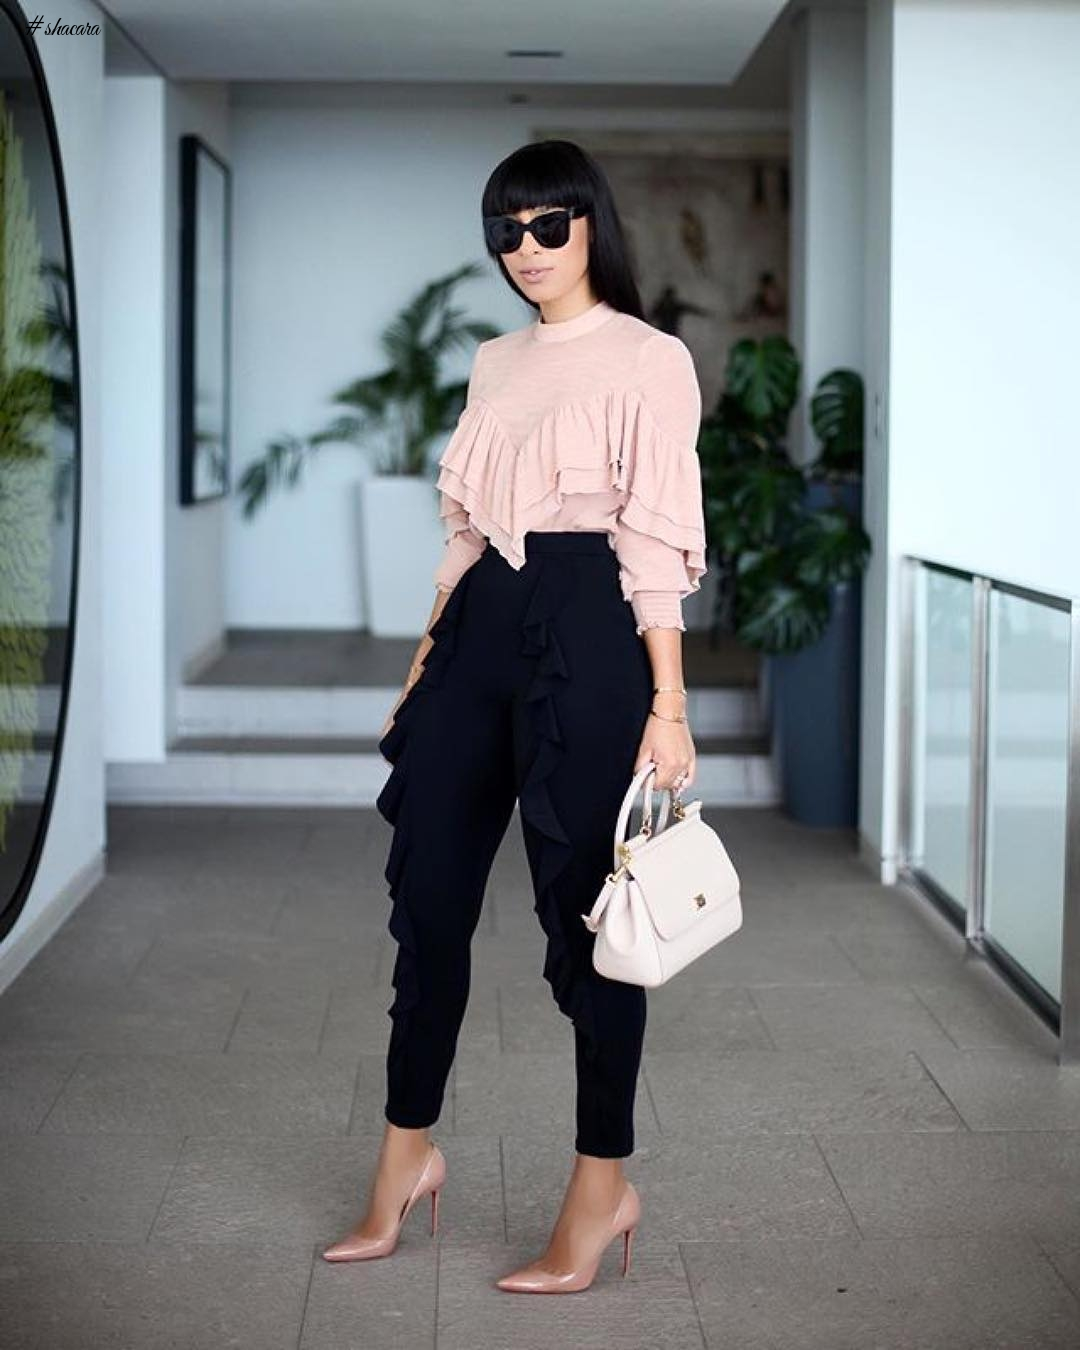 SEE THE CORPORATE ATTIRES THAT FASHIONISTAS ARE ROCKING THIS TIME!